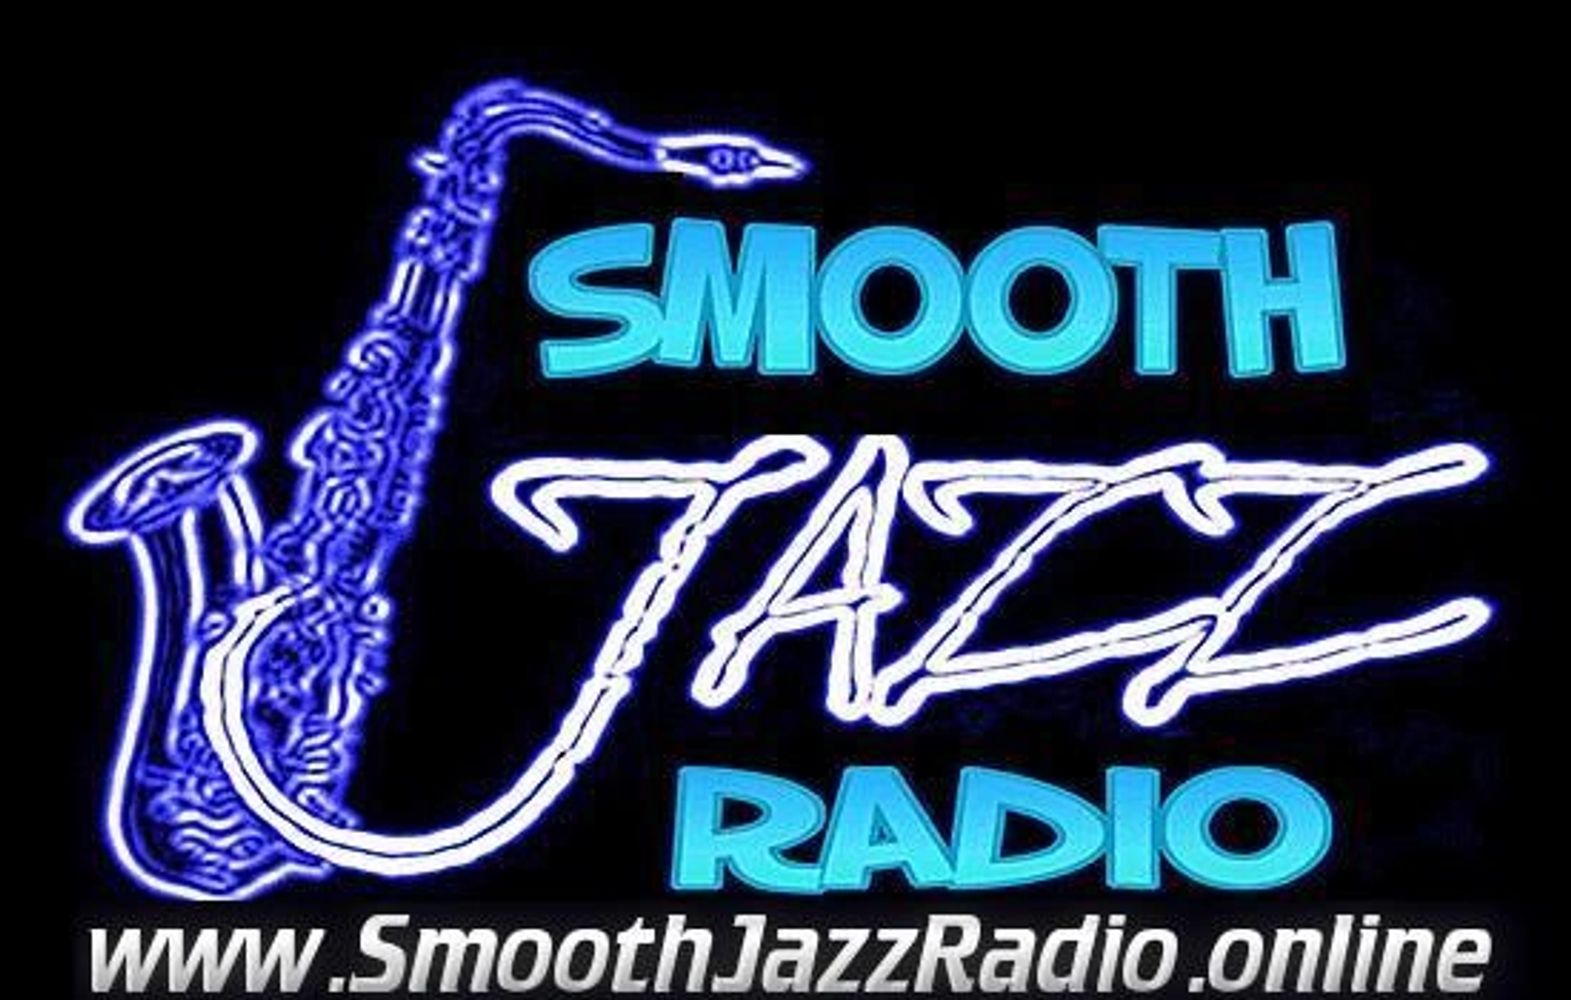 Smooth Jazz Radio - www.SmoothJazzRadio.online